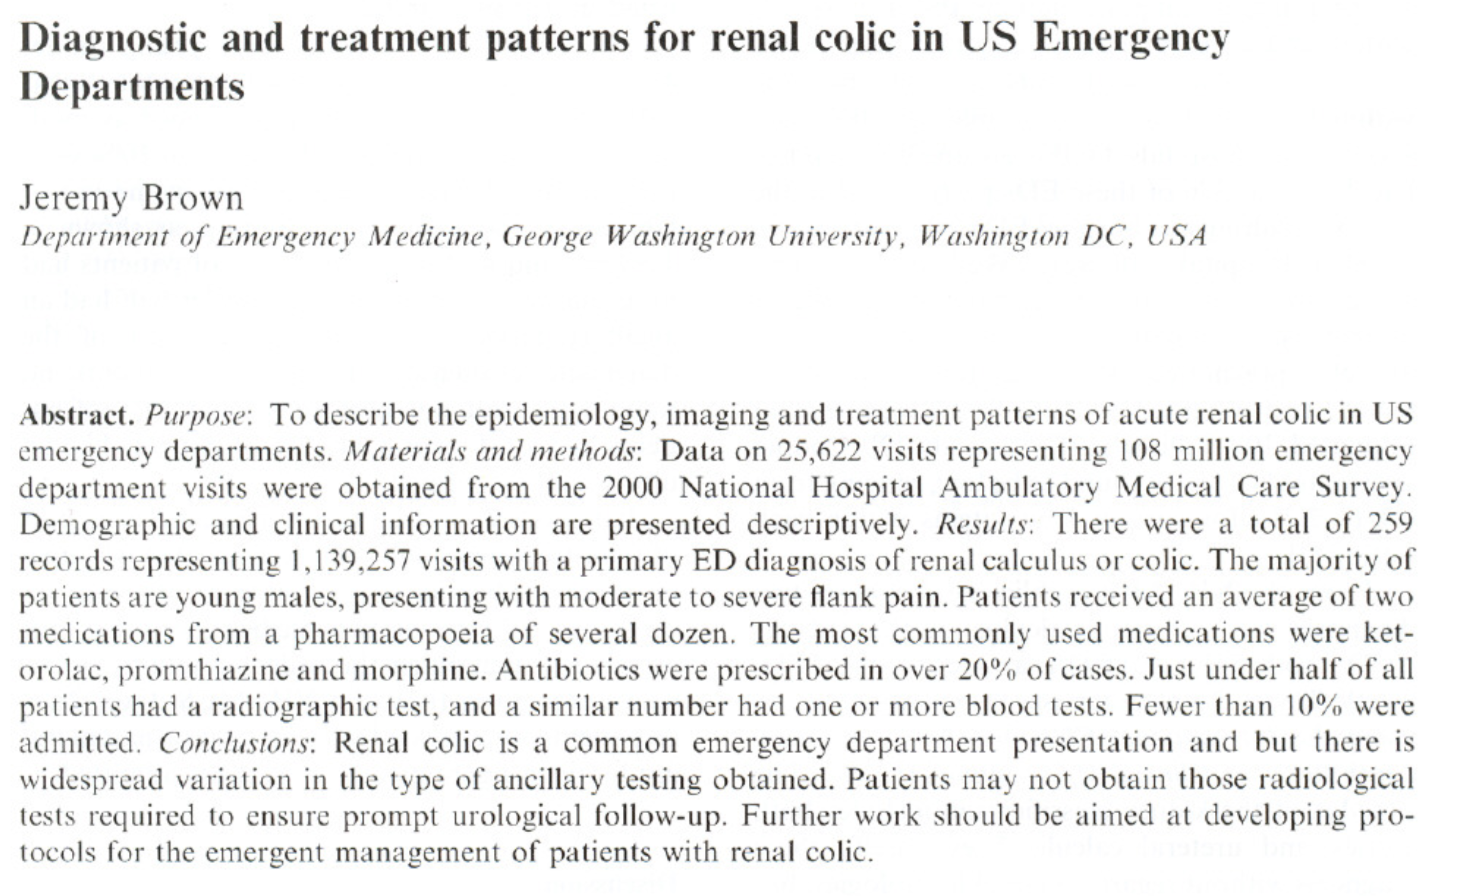 2006 - Diagnostic and Treatment Patterns for renal colic in US Emergency Departments